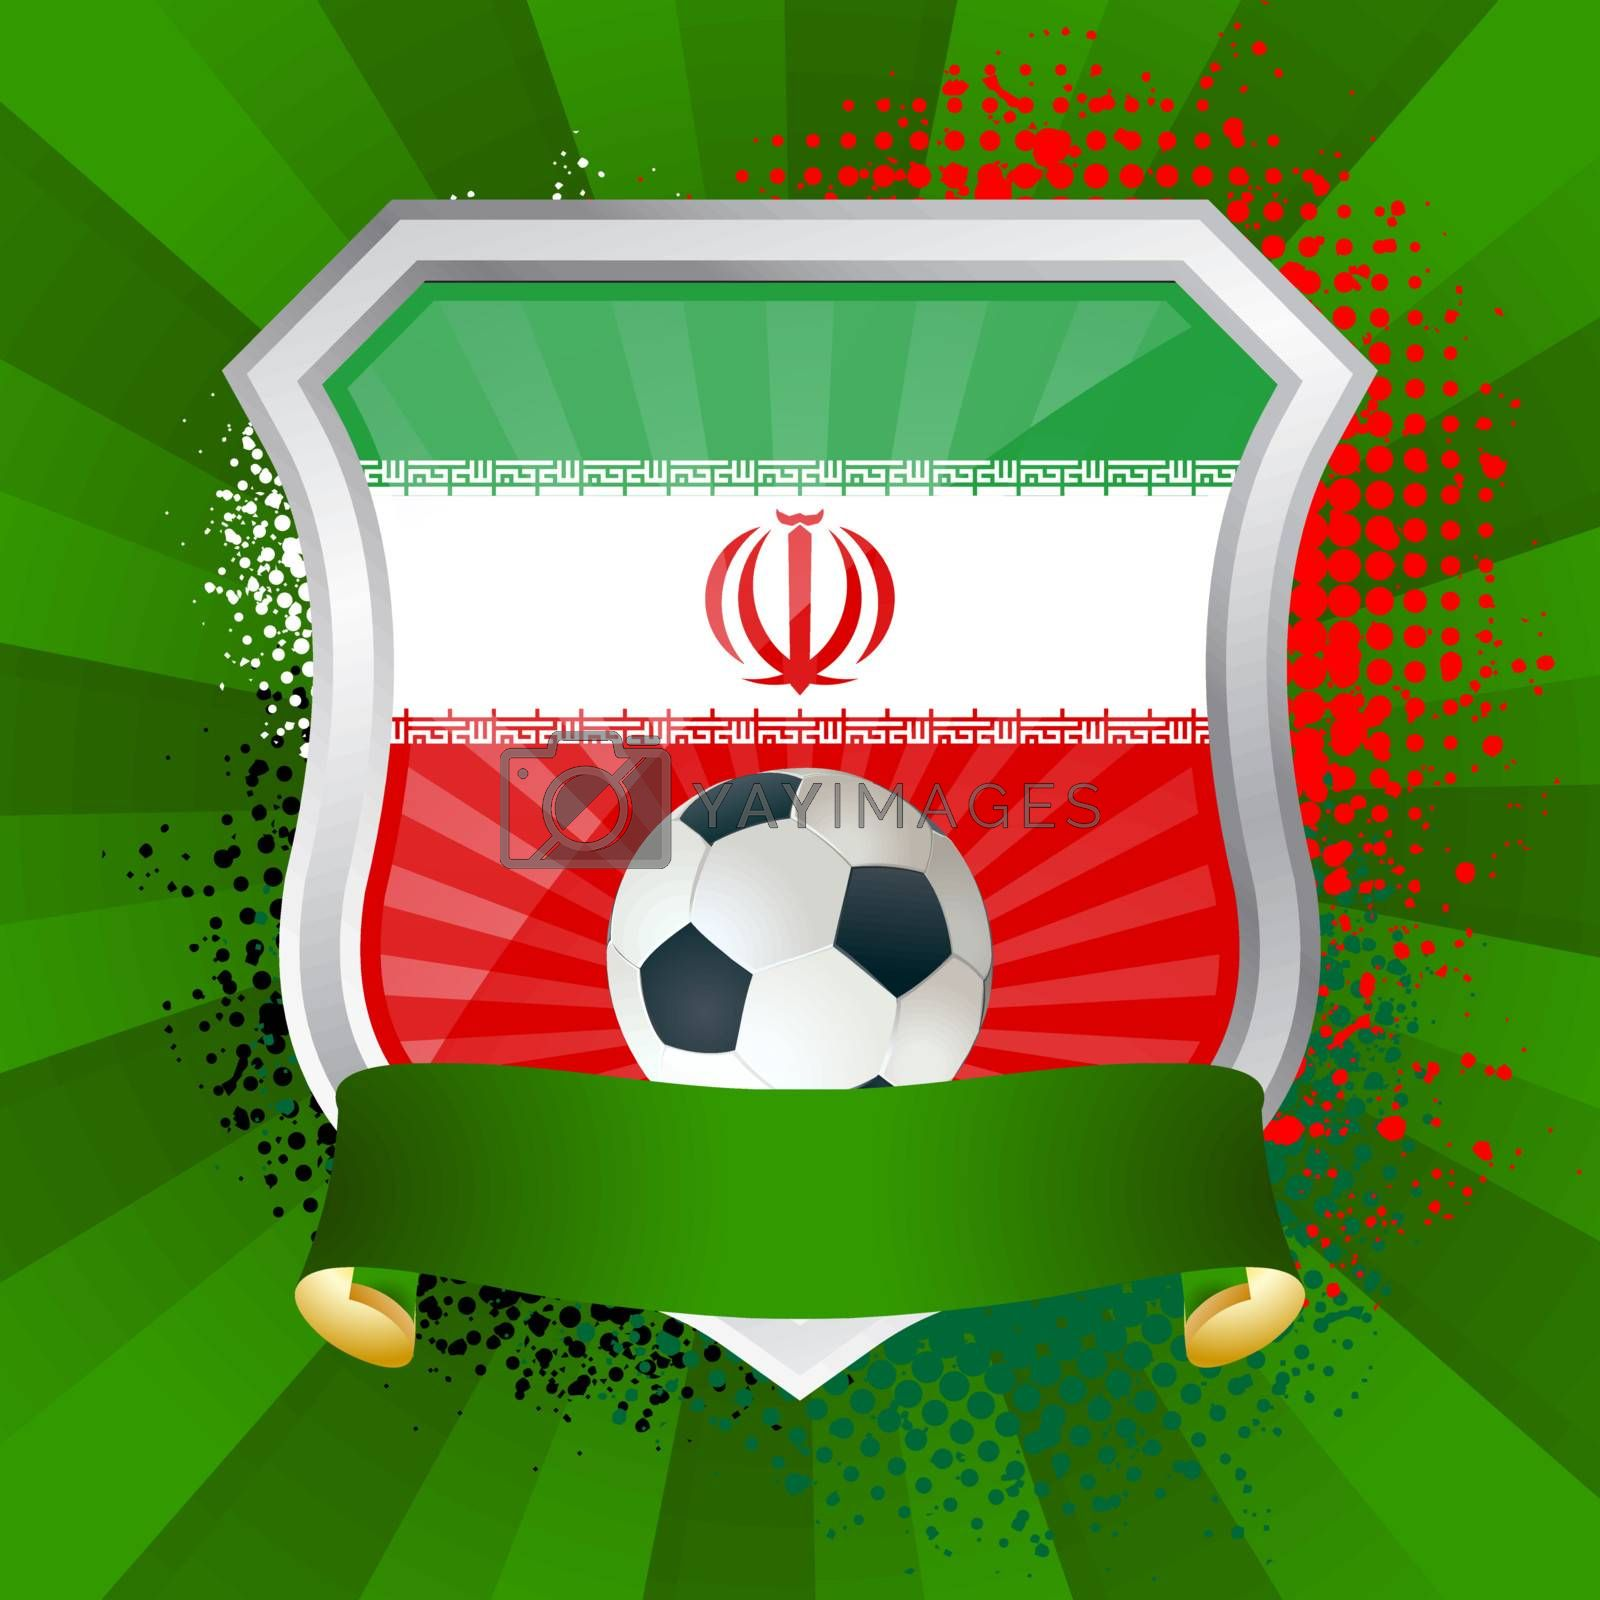 EPS 10. Shiny metal shield on bright background with flag of Iran